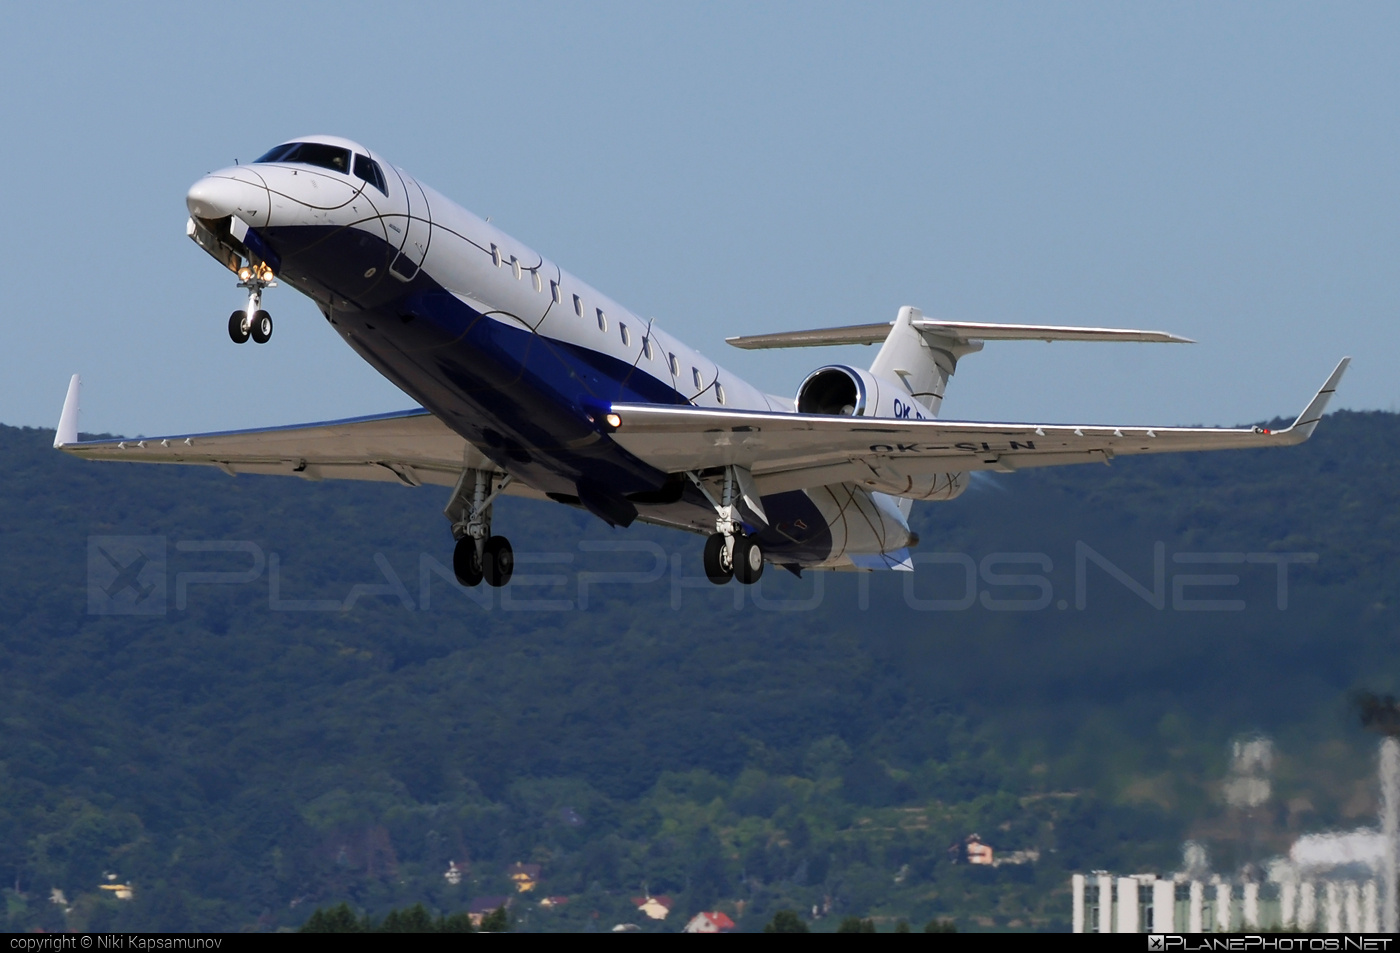 Embraer ERJ-135BJ Legacy - OK-SLN operated by ABS Jets #embraer #embraer135 #embraerlegacy #erj135 #erj135bj